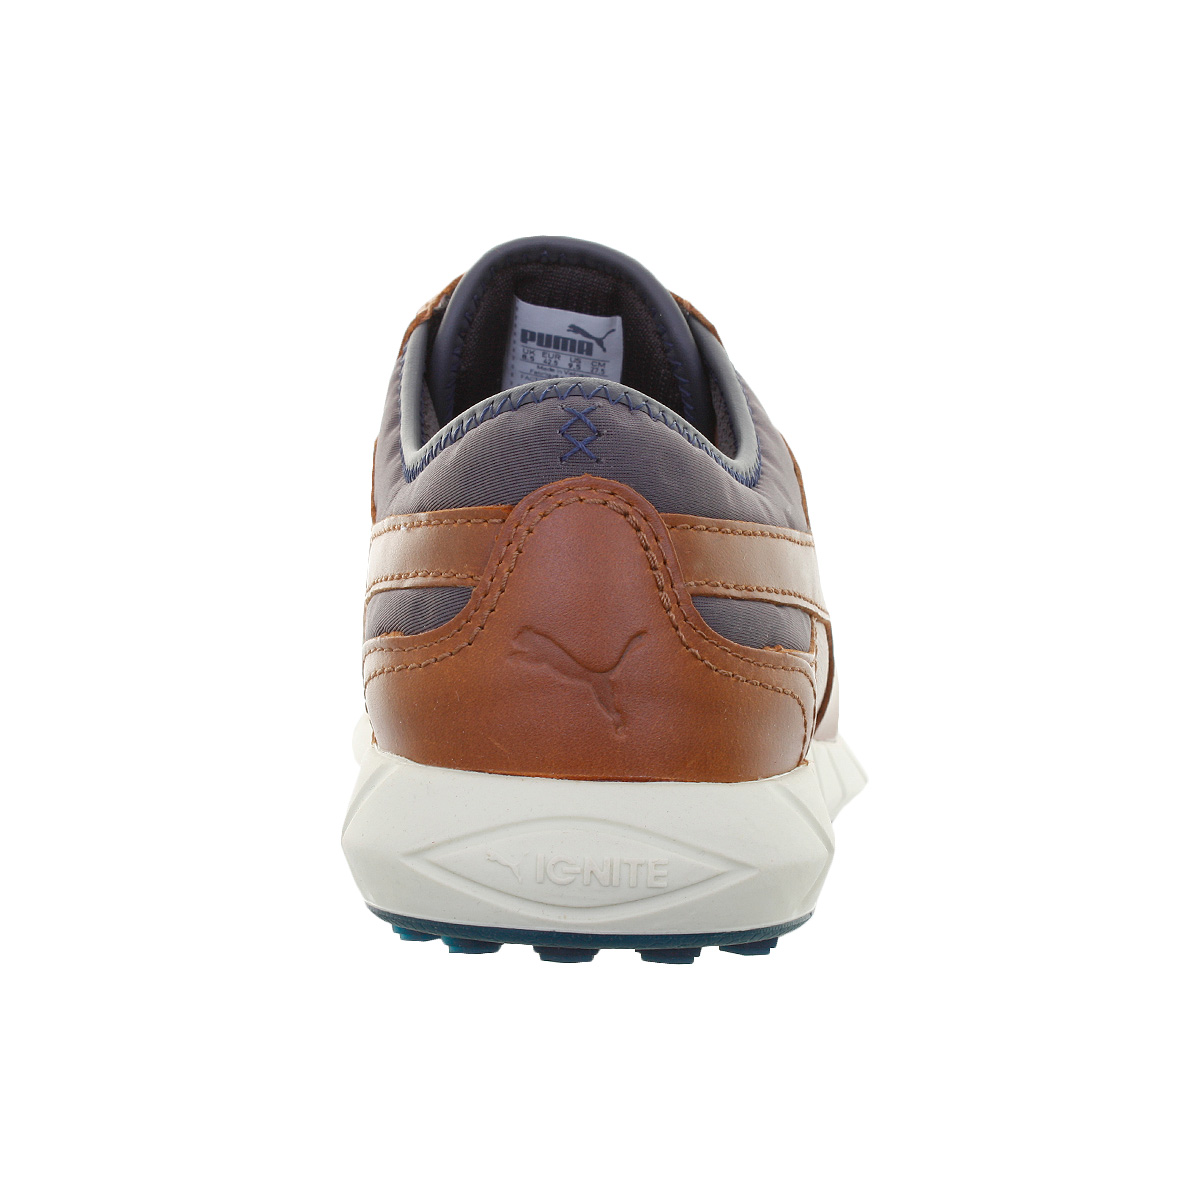 Puma Golf Mens IGNITE Spikeless Leather Waterproof Golf Shoes 40 ... cb6b7447189d